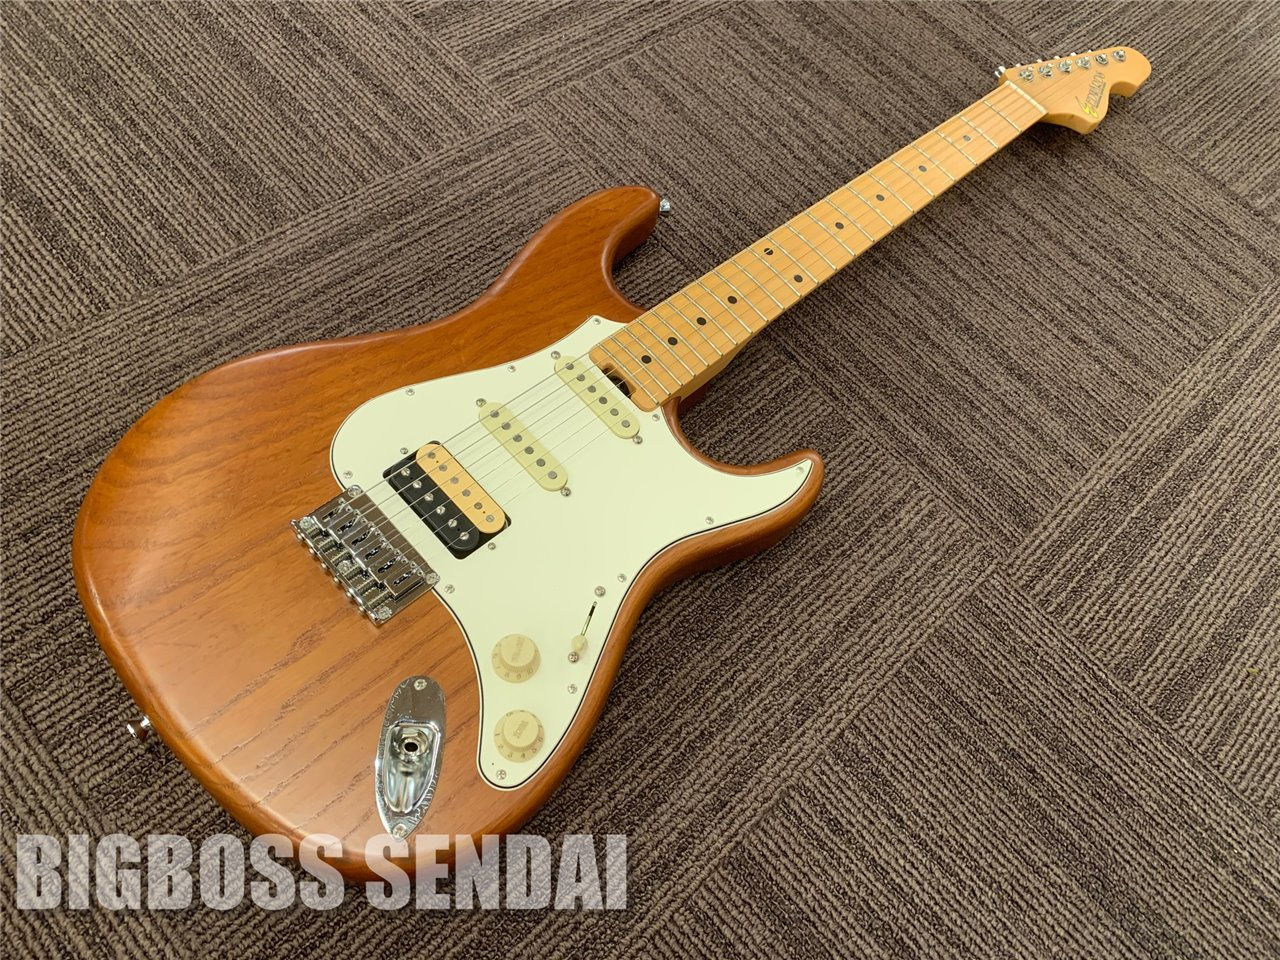 【即納可能】EDWARDS E-SUFFER / 家具Natural  / Maple Fingerboard(9mm Parabellum Bullet 滝 善充モデル)仙台店